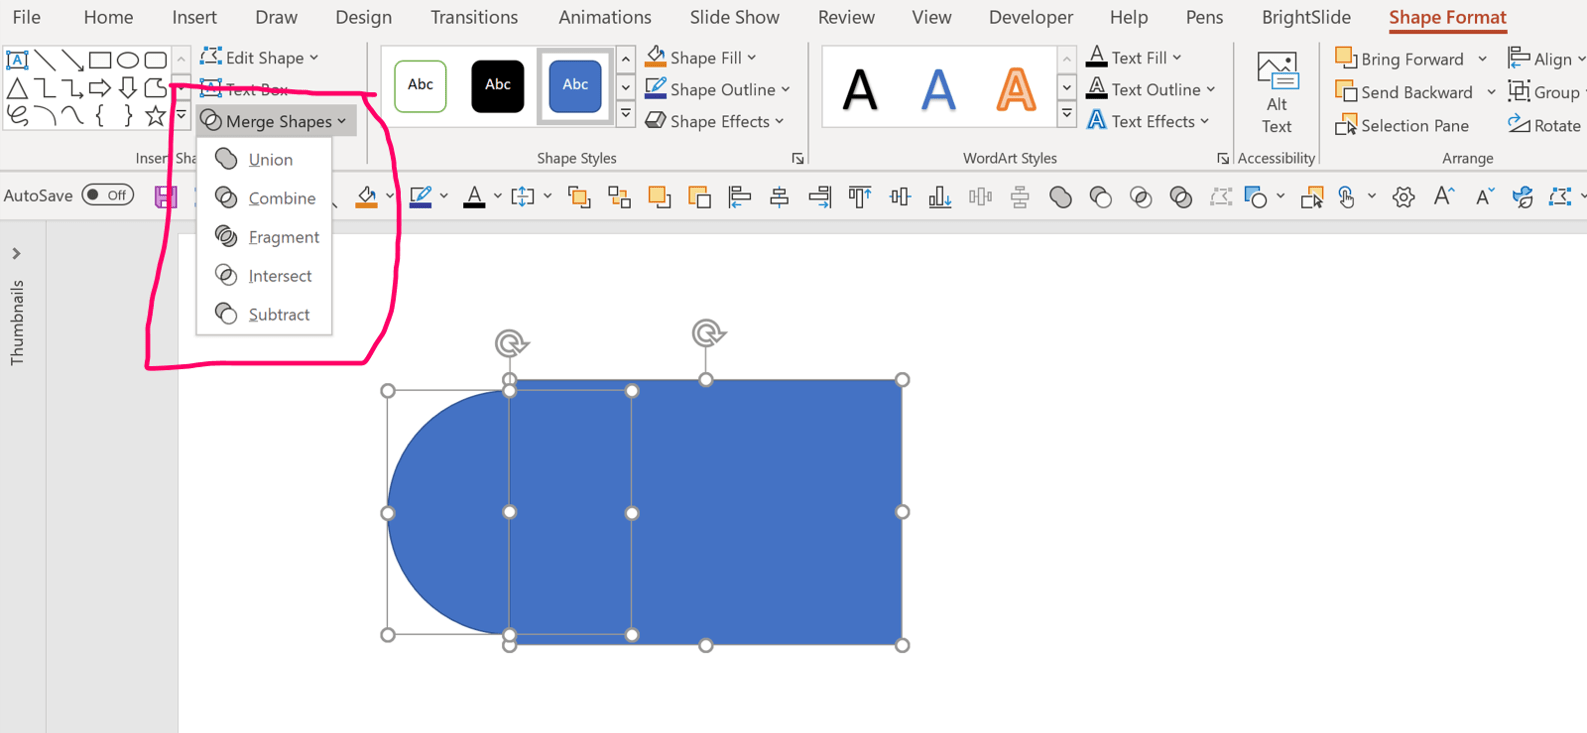 PowerPoint screenshot showing the Merge shapes tools